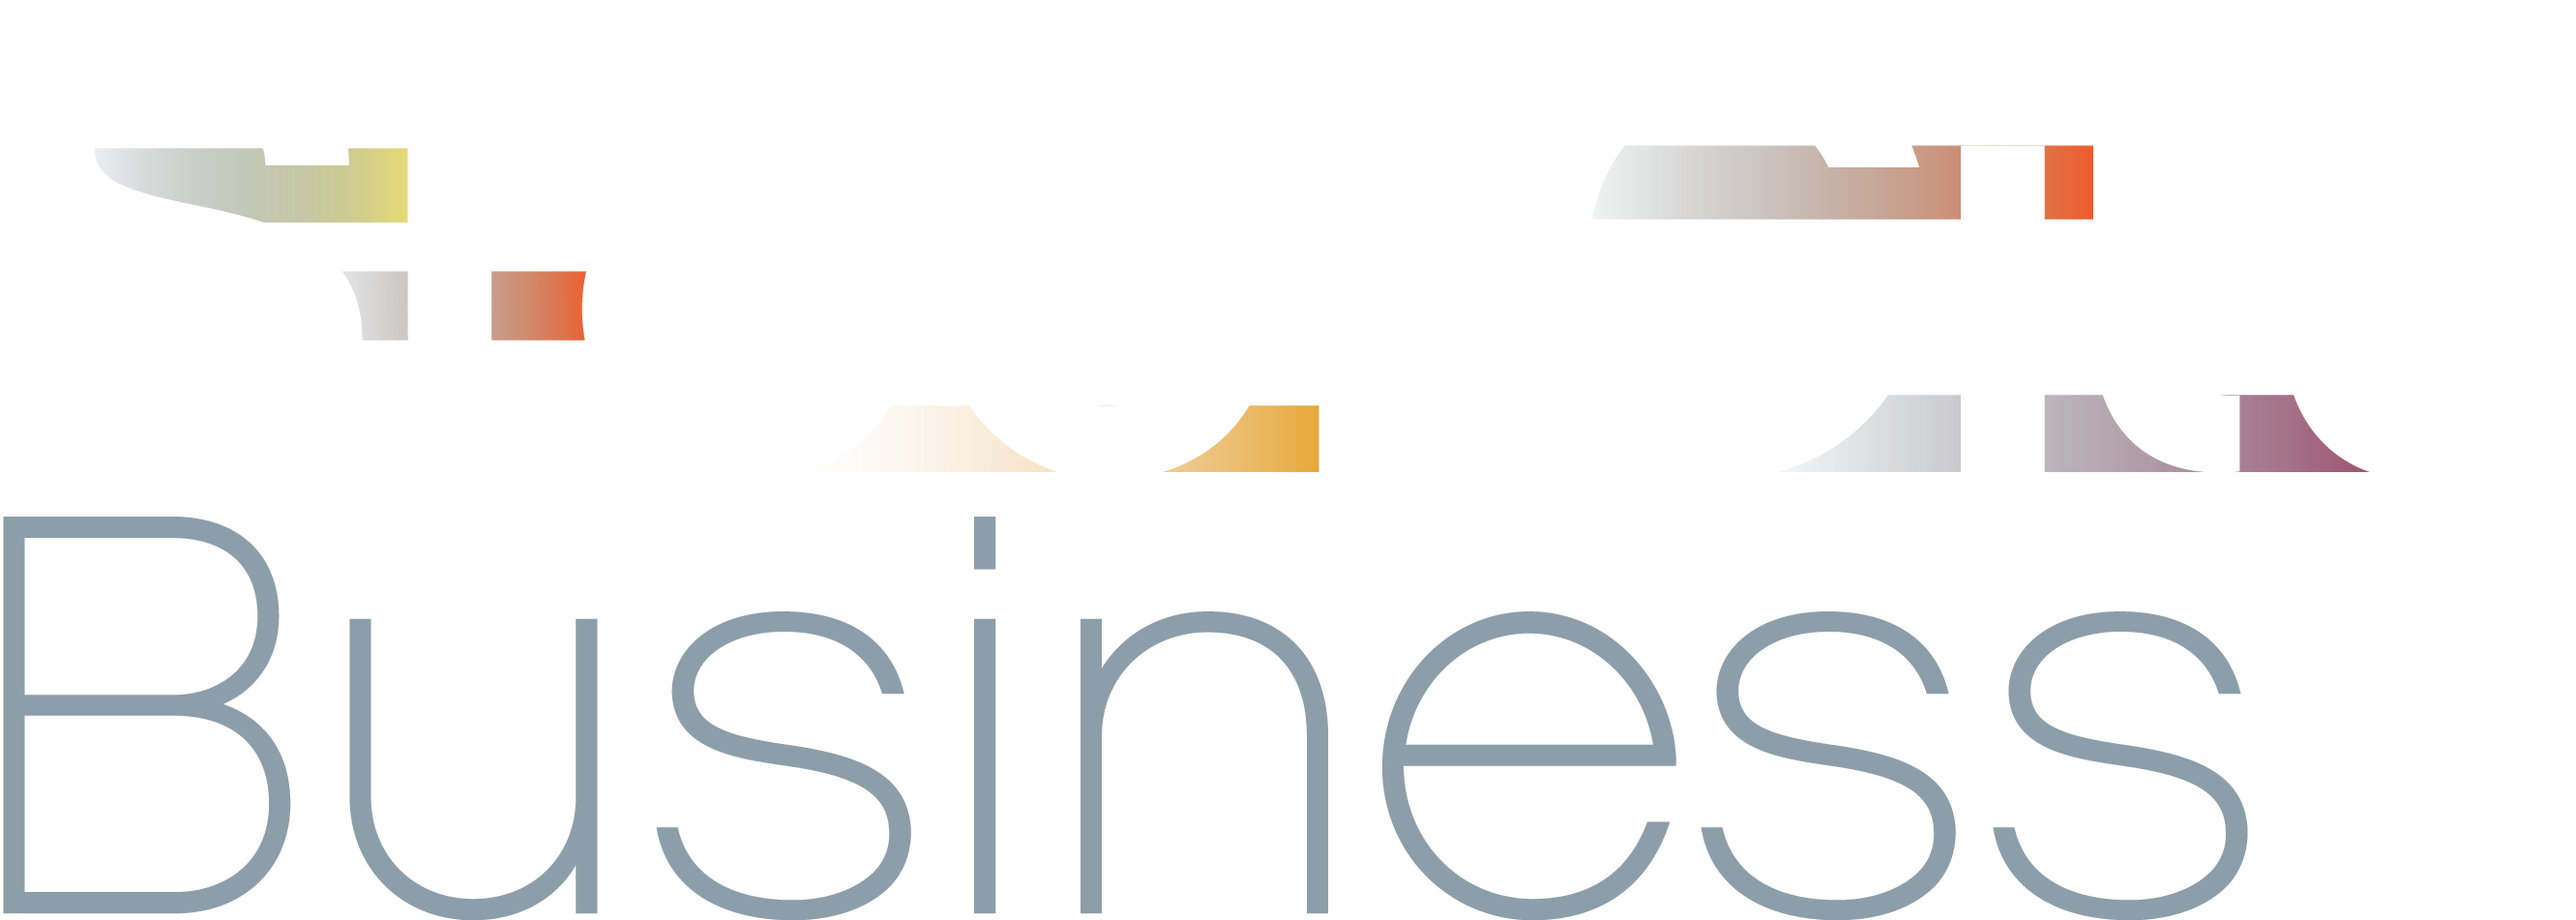 Steel City Business, the Sheffield Business Podcast